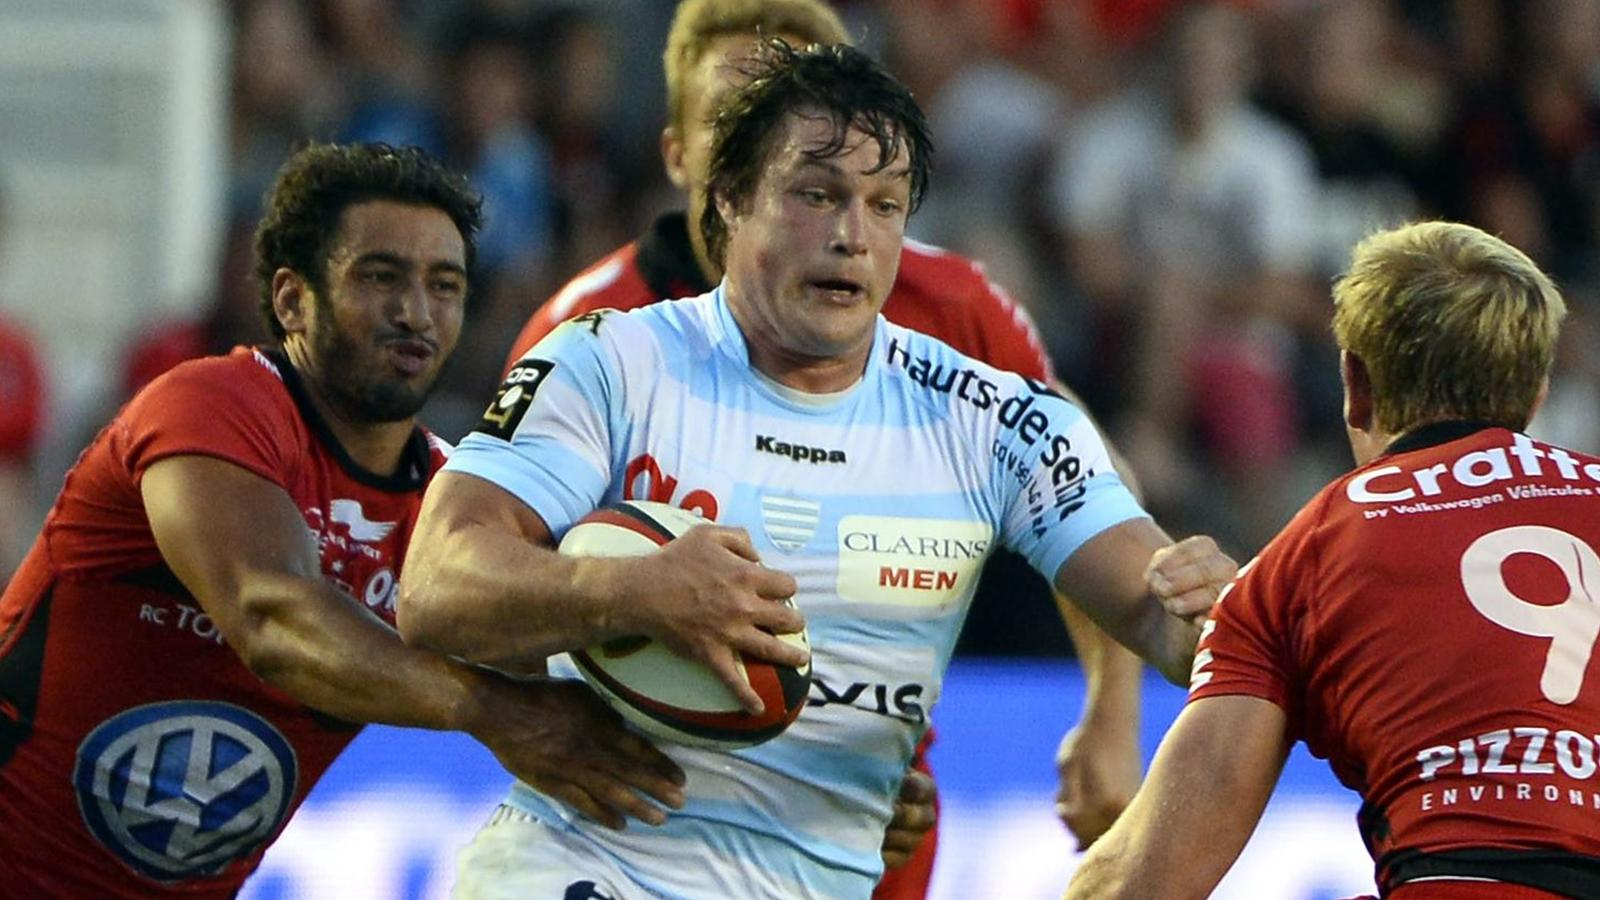 Rugby Top 14 Racing Metro 92 RC Toulon en direct live streaming